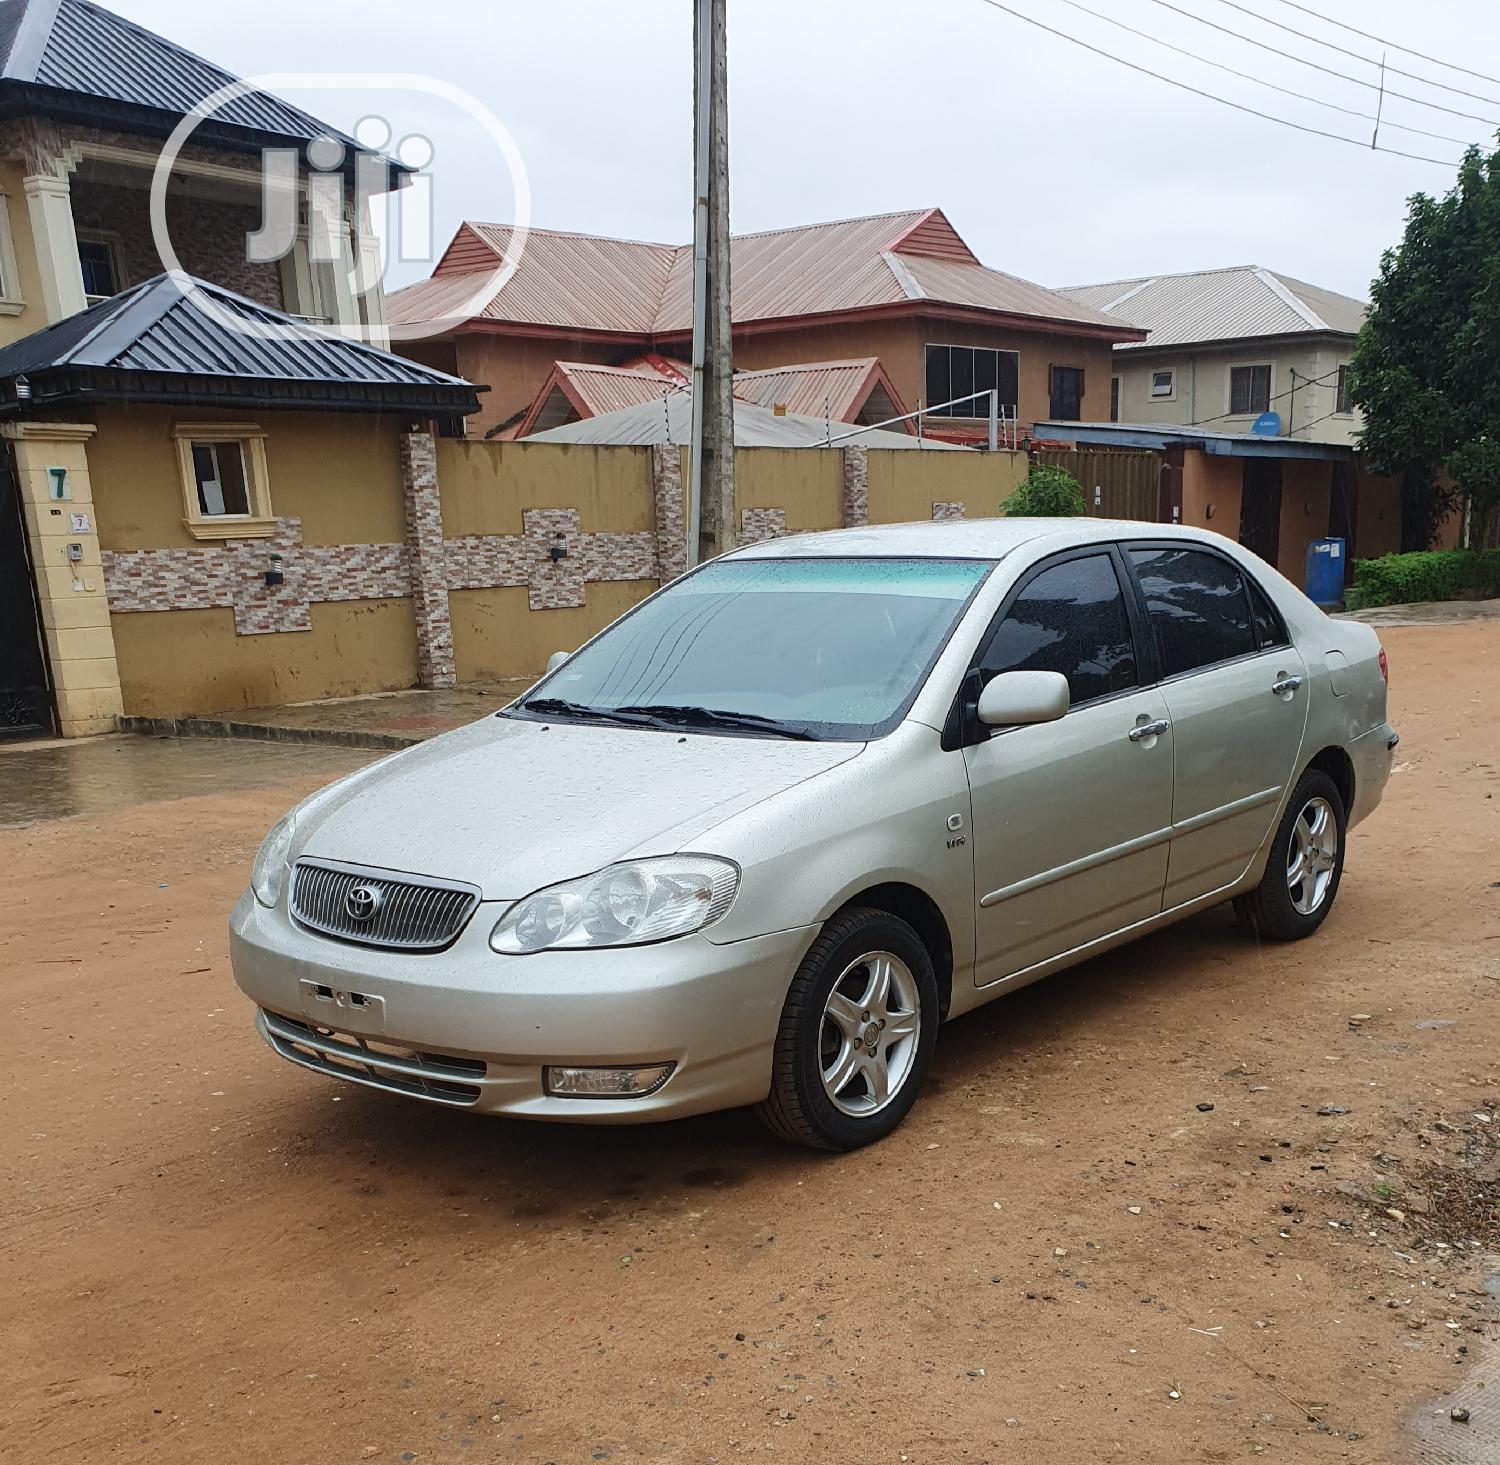 Toyota Corolla 2007 | Cars for sale in Magodo, Lagos State, Nigeria